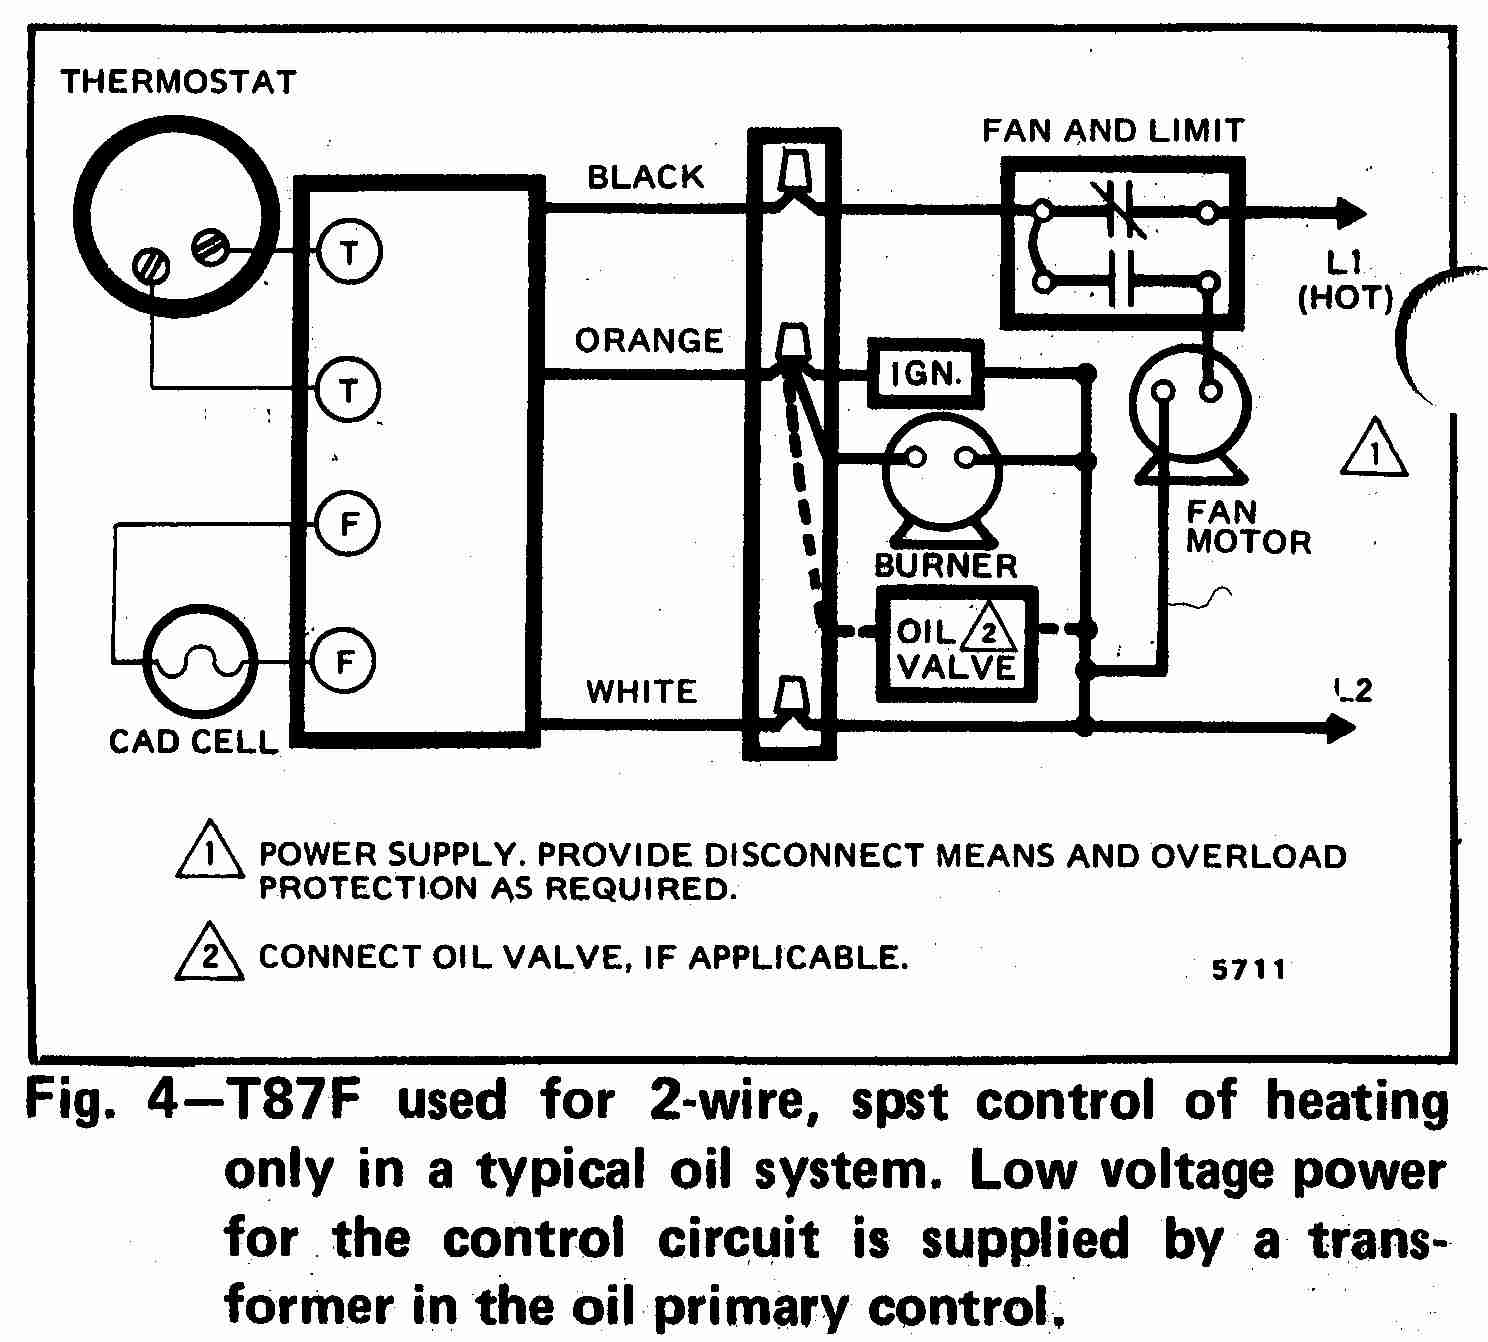 TT_T87F_0002_2W_DJF room thermostat wiring diagrams for hvac systems lennox gas furnace wiring diagram at mifinder.co